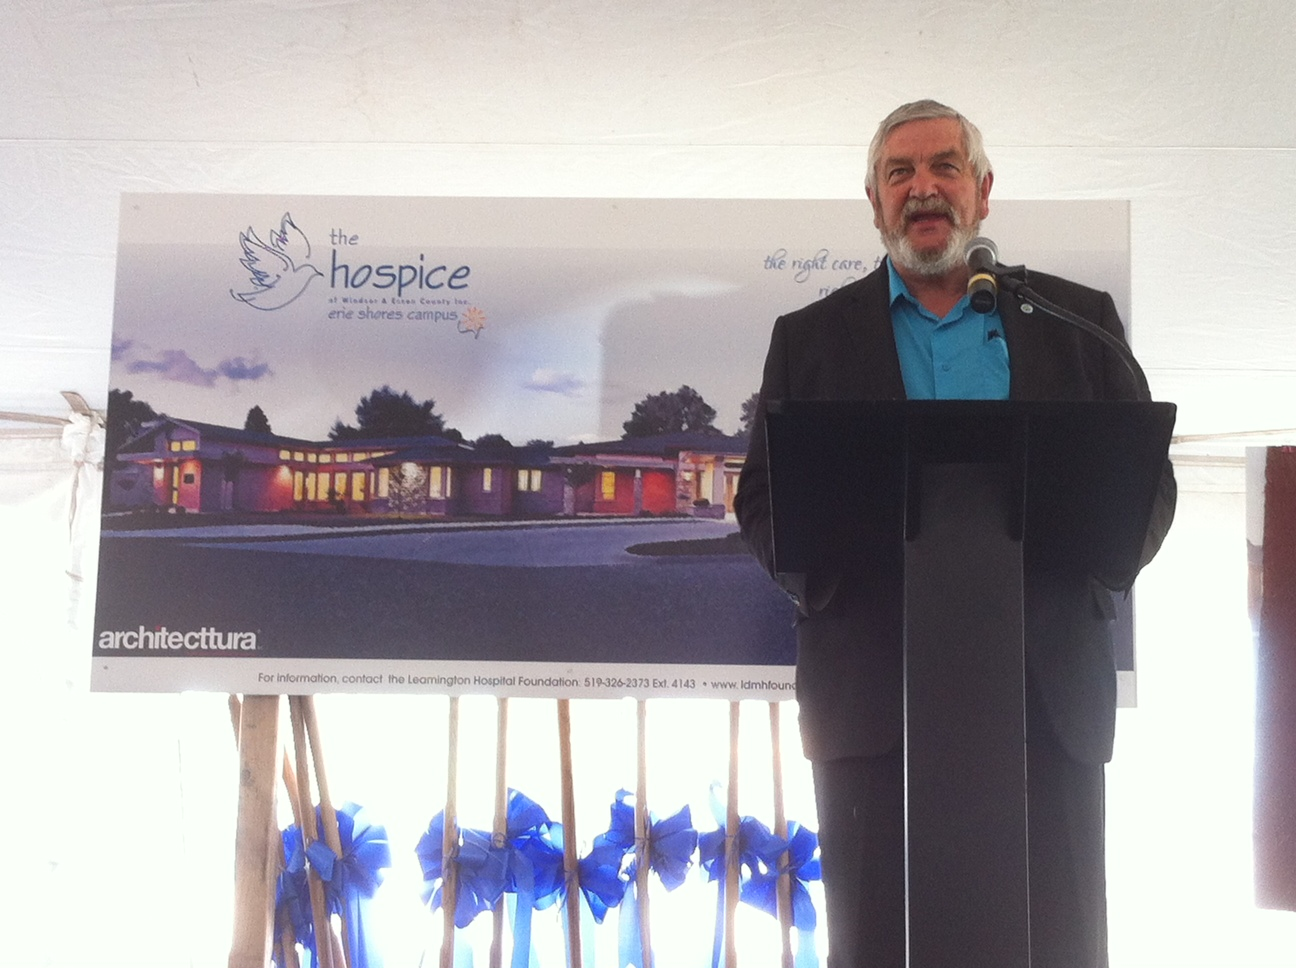 Essex County Warden Tom Bain at the Hospice fundraising kick-off in Leamington. June 5, 2014. (Photo by Kevin Black)